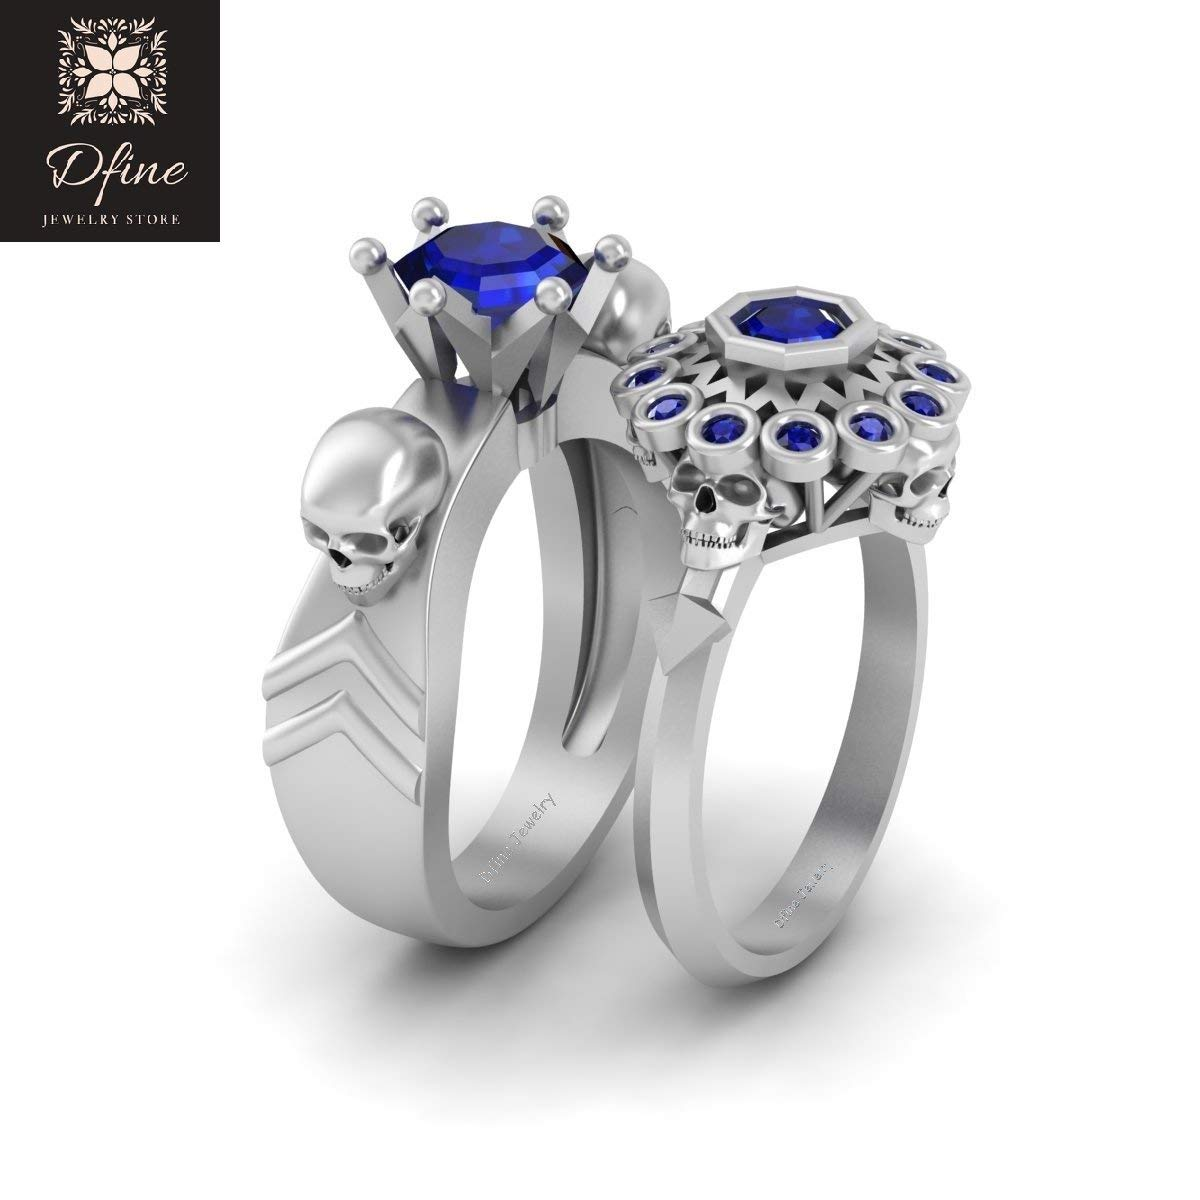 246df76f47 Octagon Cut Sapphire Blue Skull Wedding Ring Band Set Matching Gothic Couple  Rings Solid 14k White